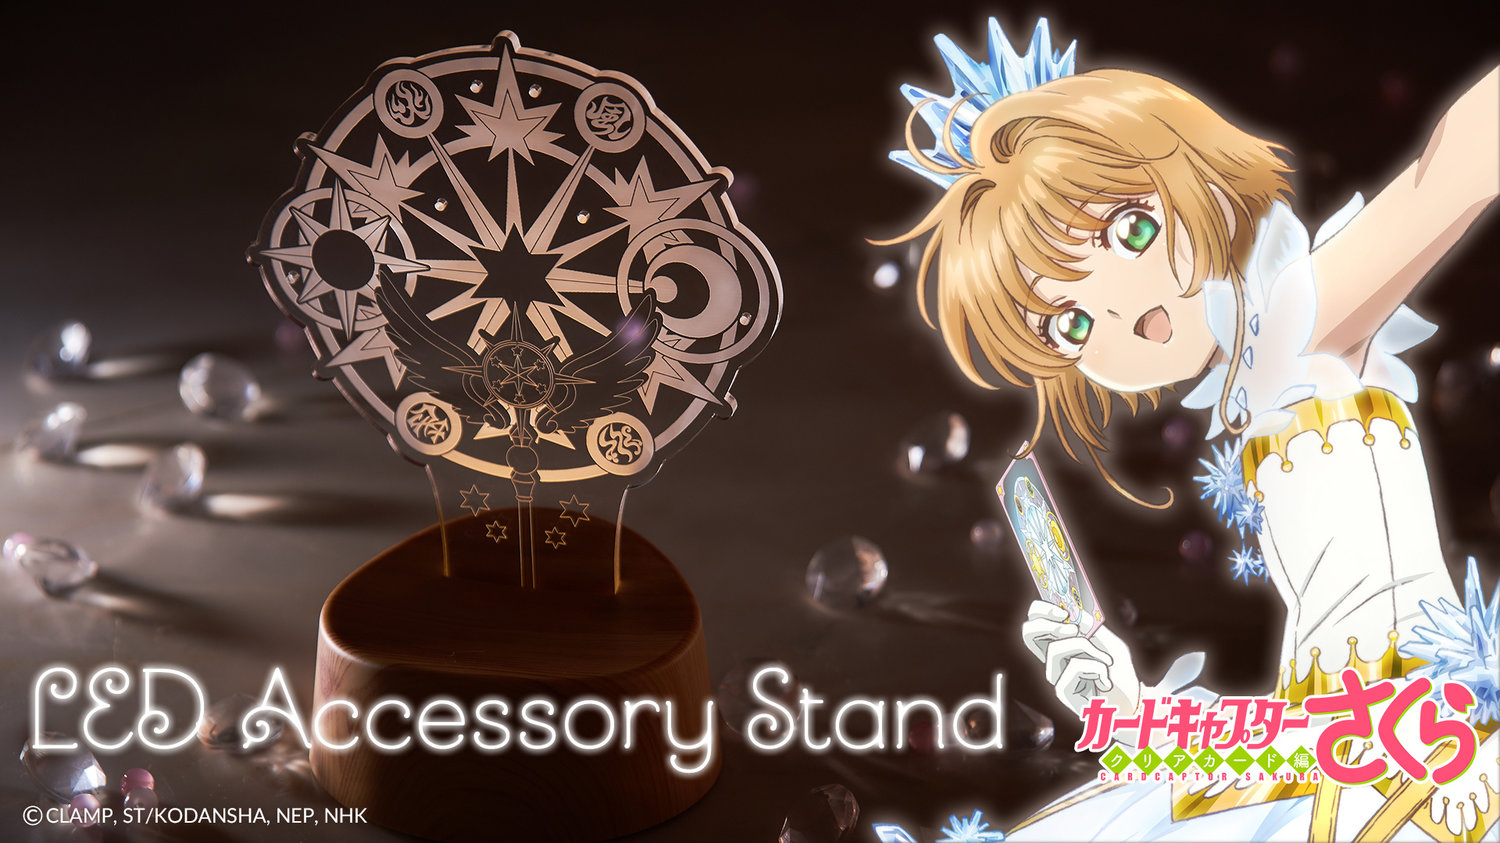 Cardcaptor Sakura :Clear Card LED Accessory Stand